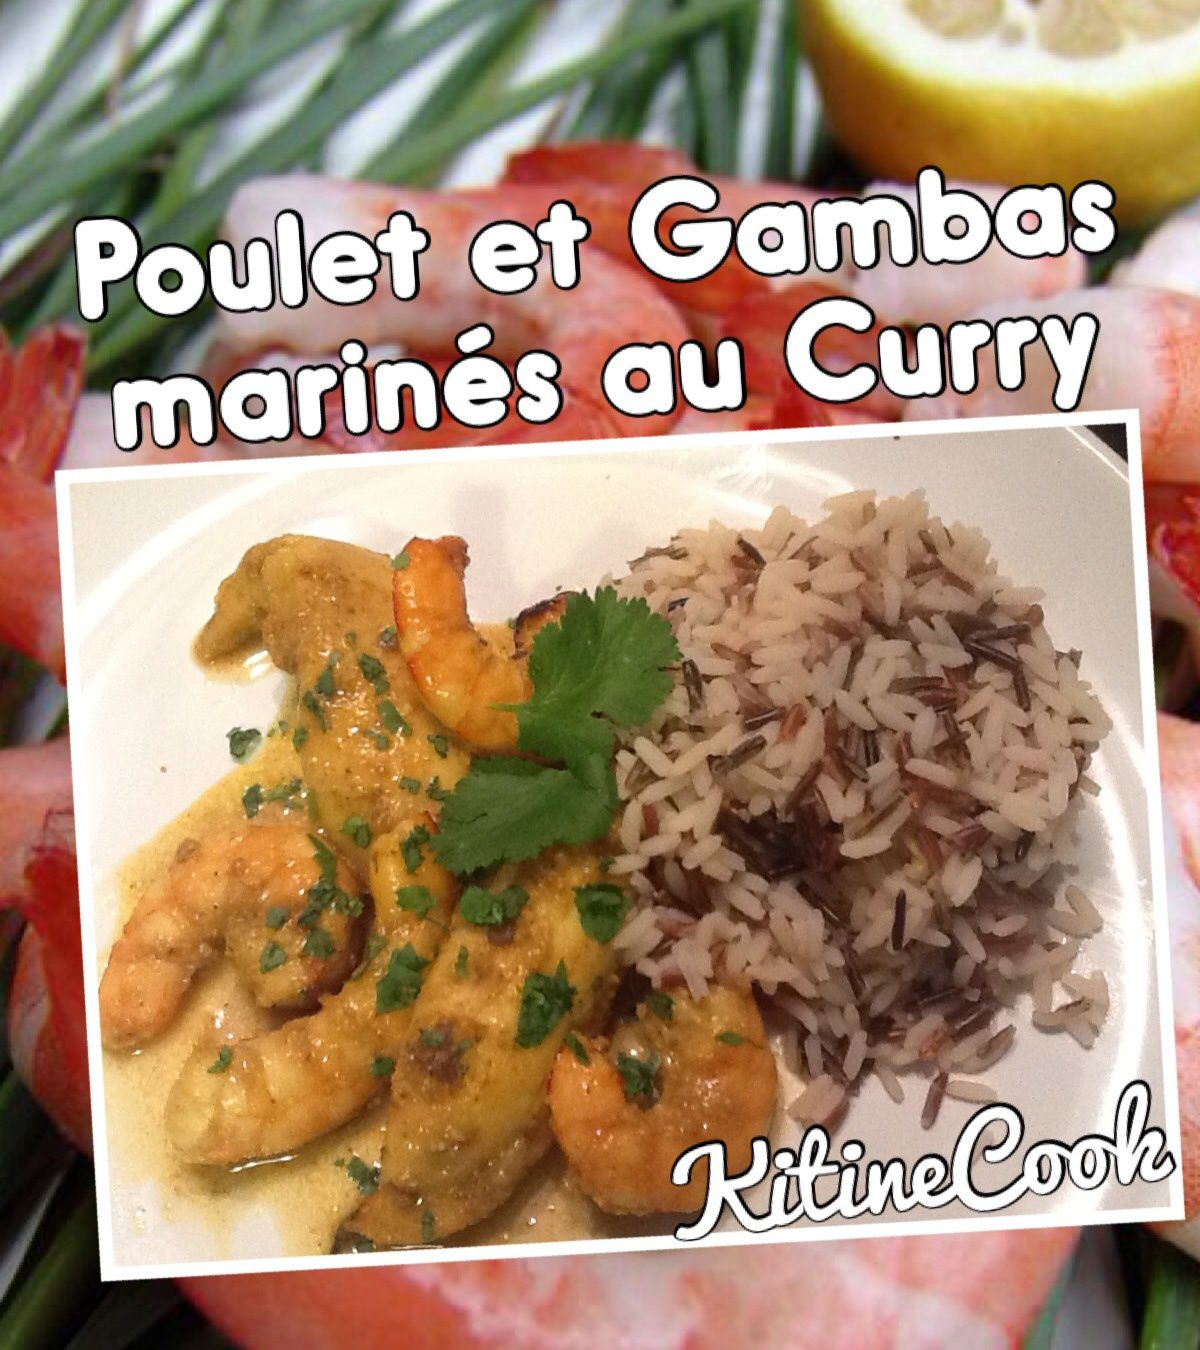 Poulet et gambas marines au curry kitinecook for Marinade poulet barbecue curry